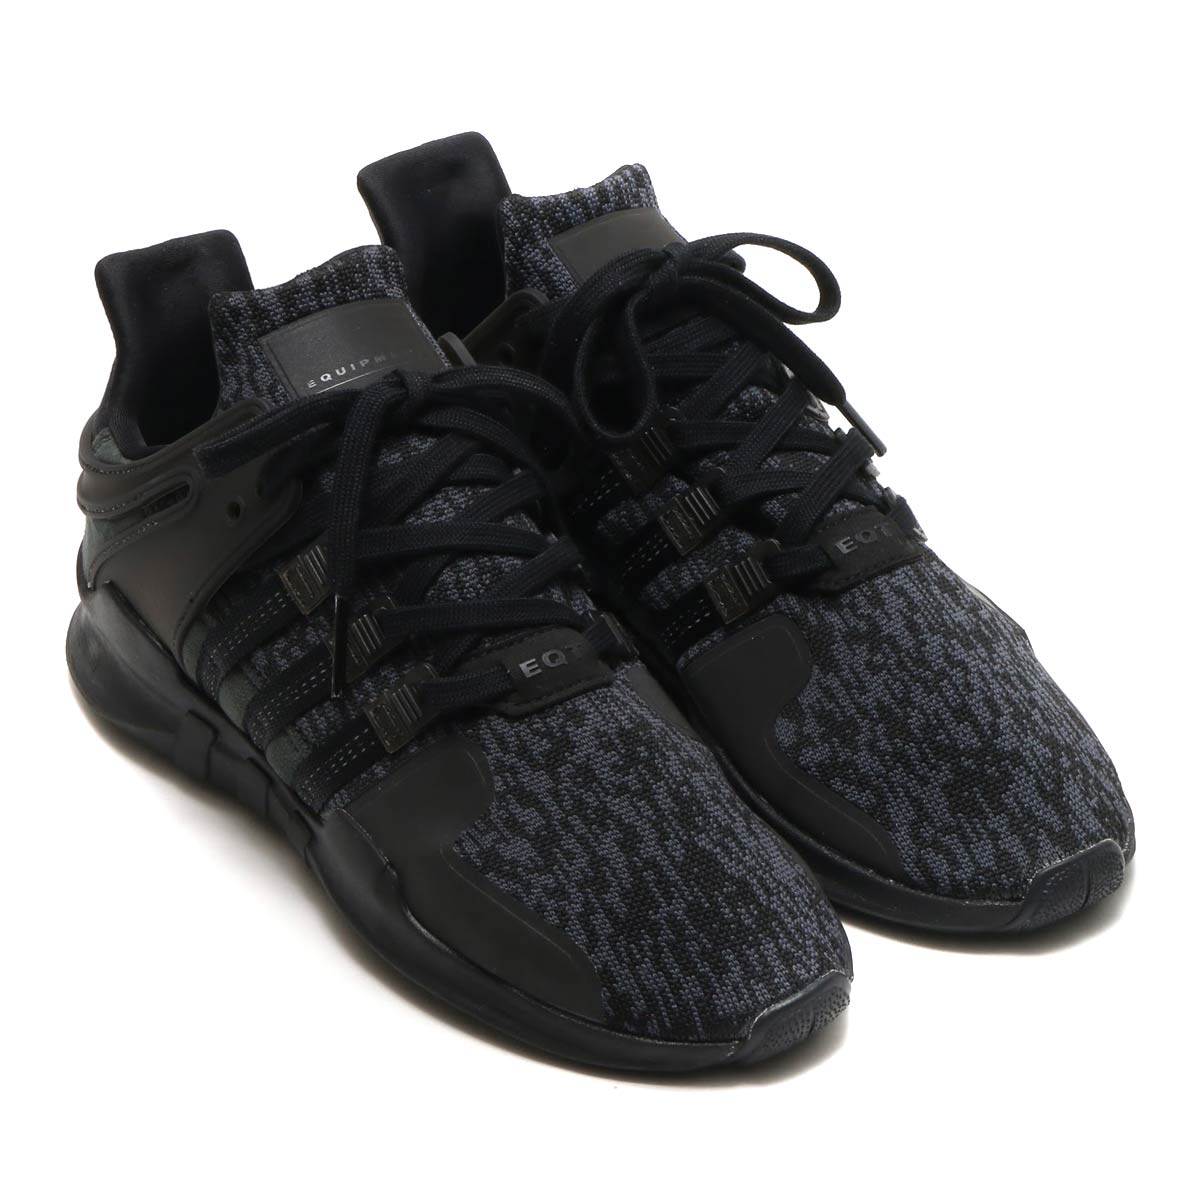 adidas Originals EQT SUPPORTADV (アディダス オリジナルス EQT サポート ADV)Core Black/Core Black/Sub Green【メンズ スニーカー】17FW-I